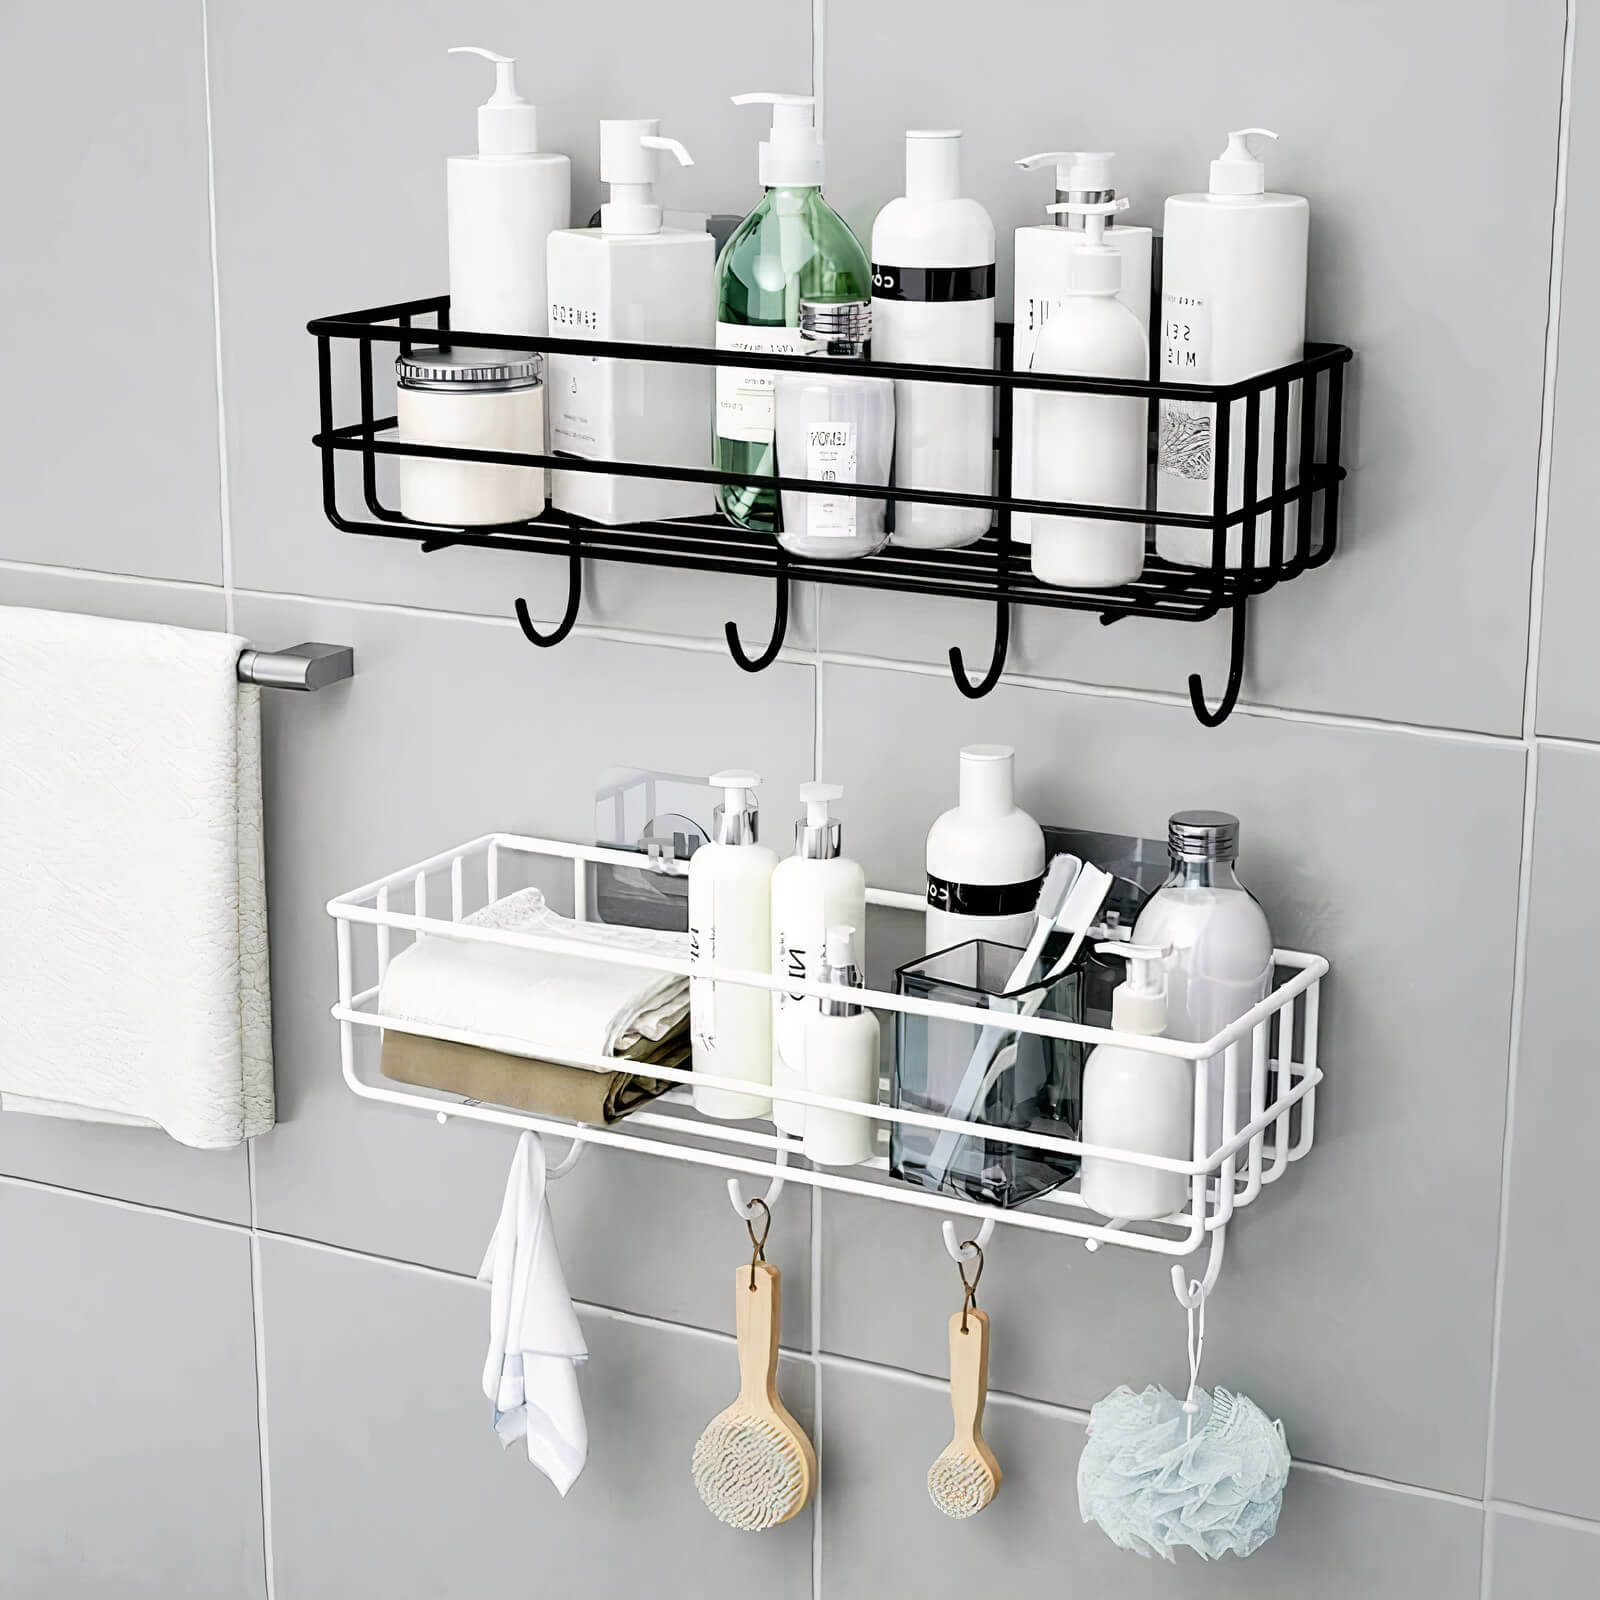 Drill Free Wall Mounted Caddy